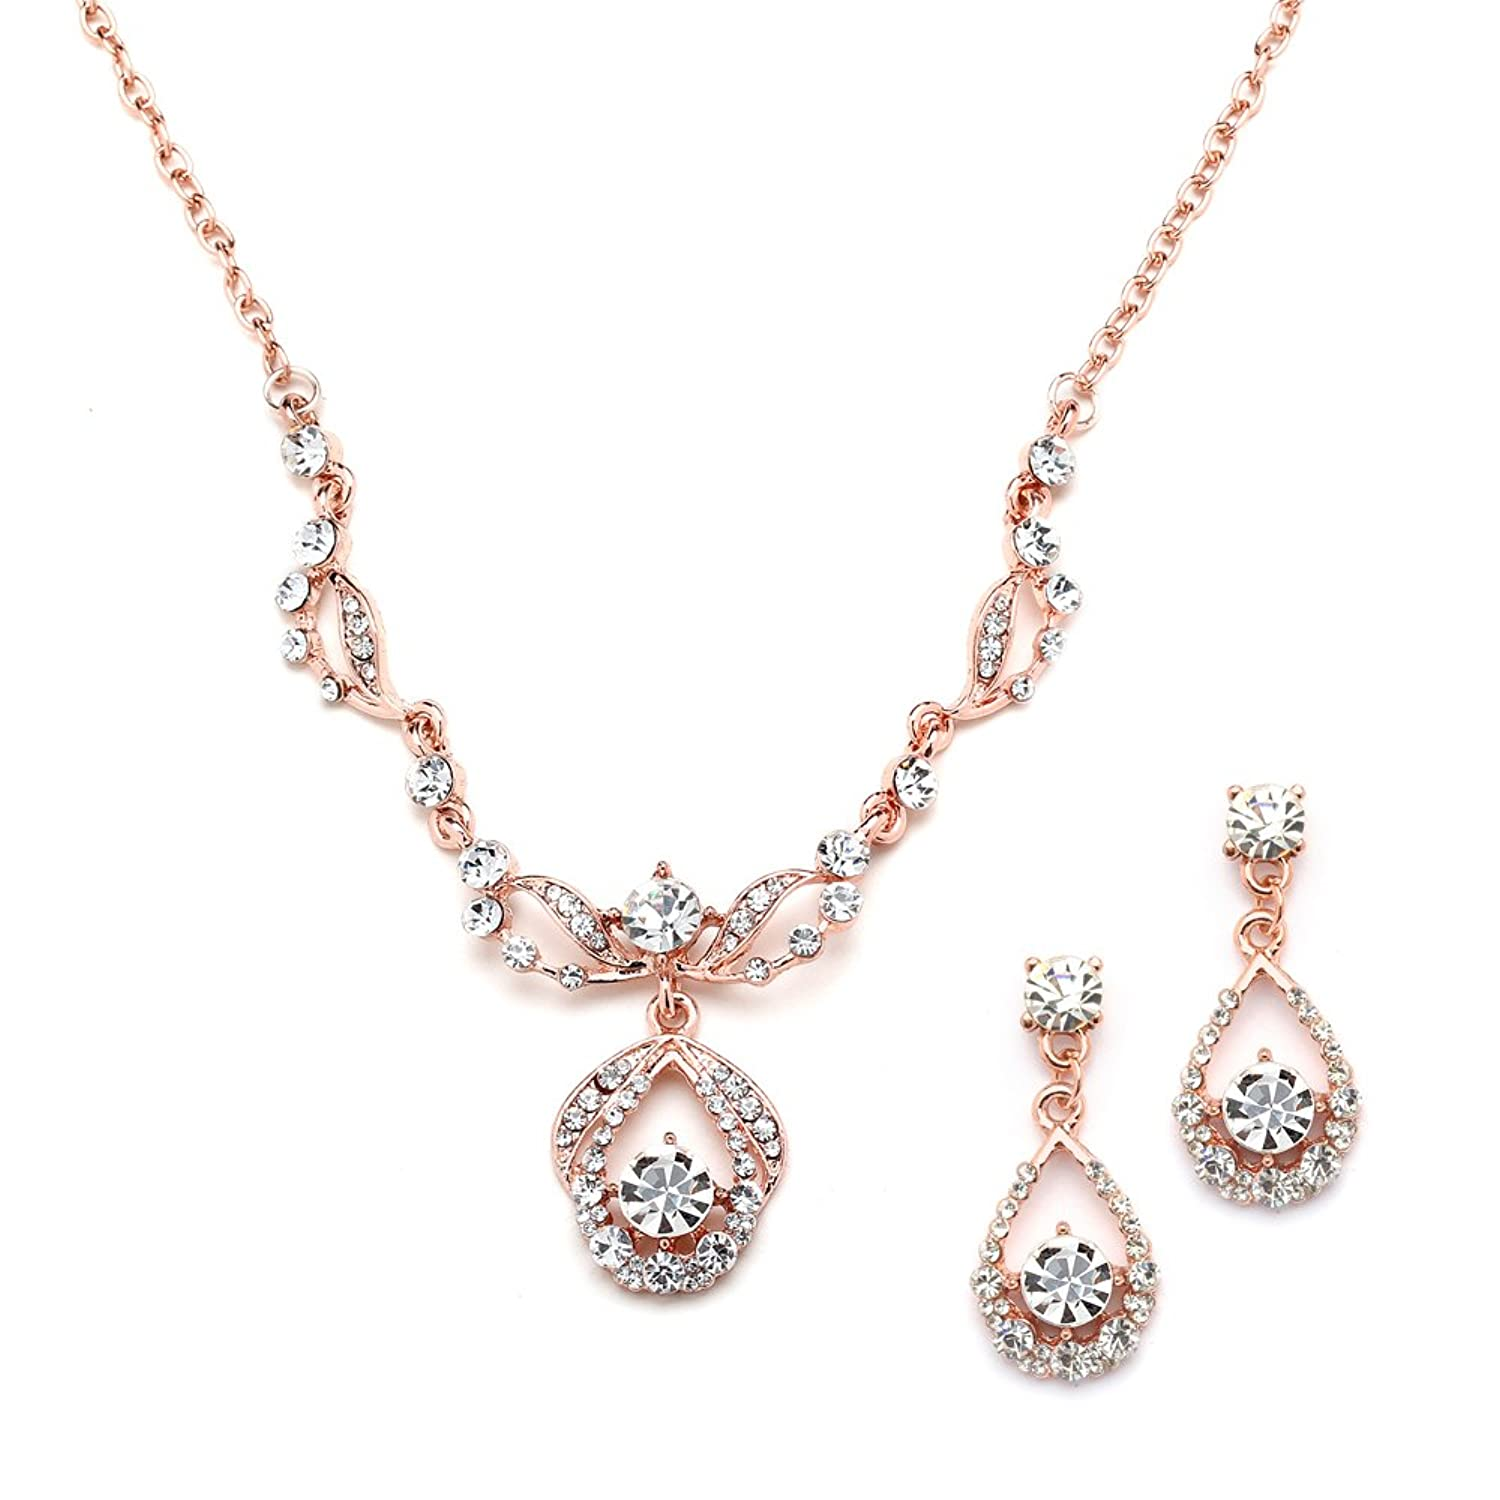 Mariell Rose Gold Vintage Crystal Necklace And Earrings Set  Retro Glamour  For Bridal And Bridesmaids